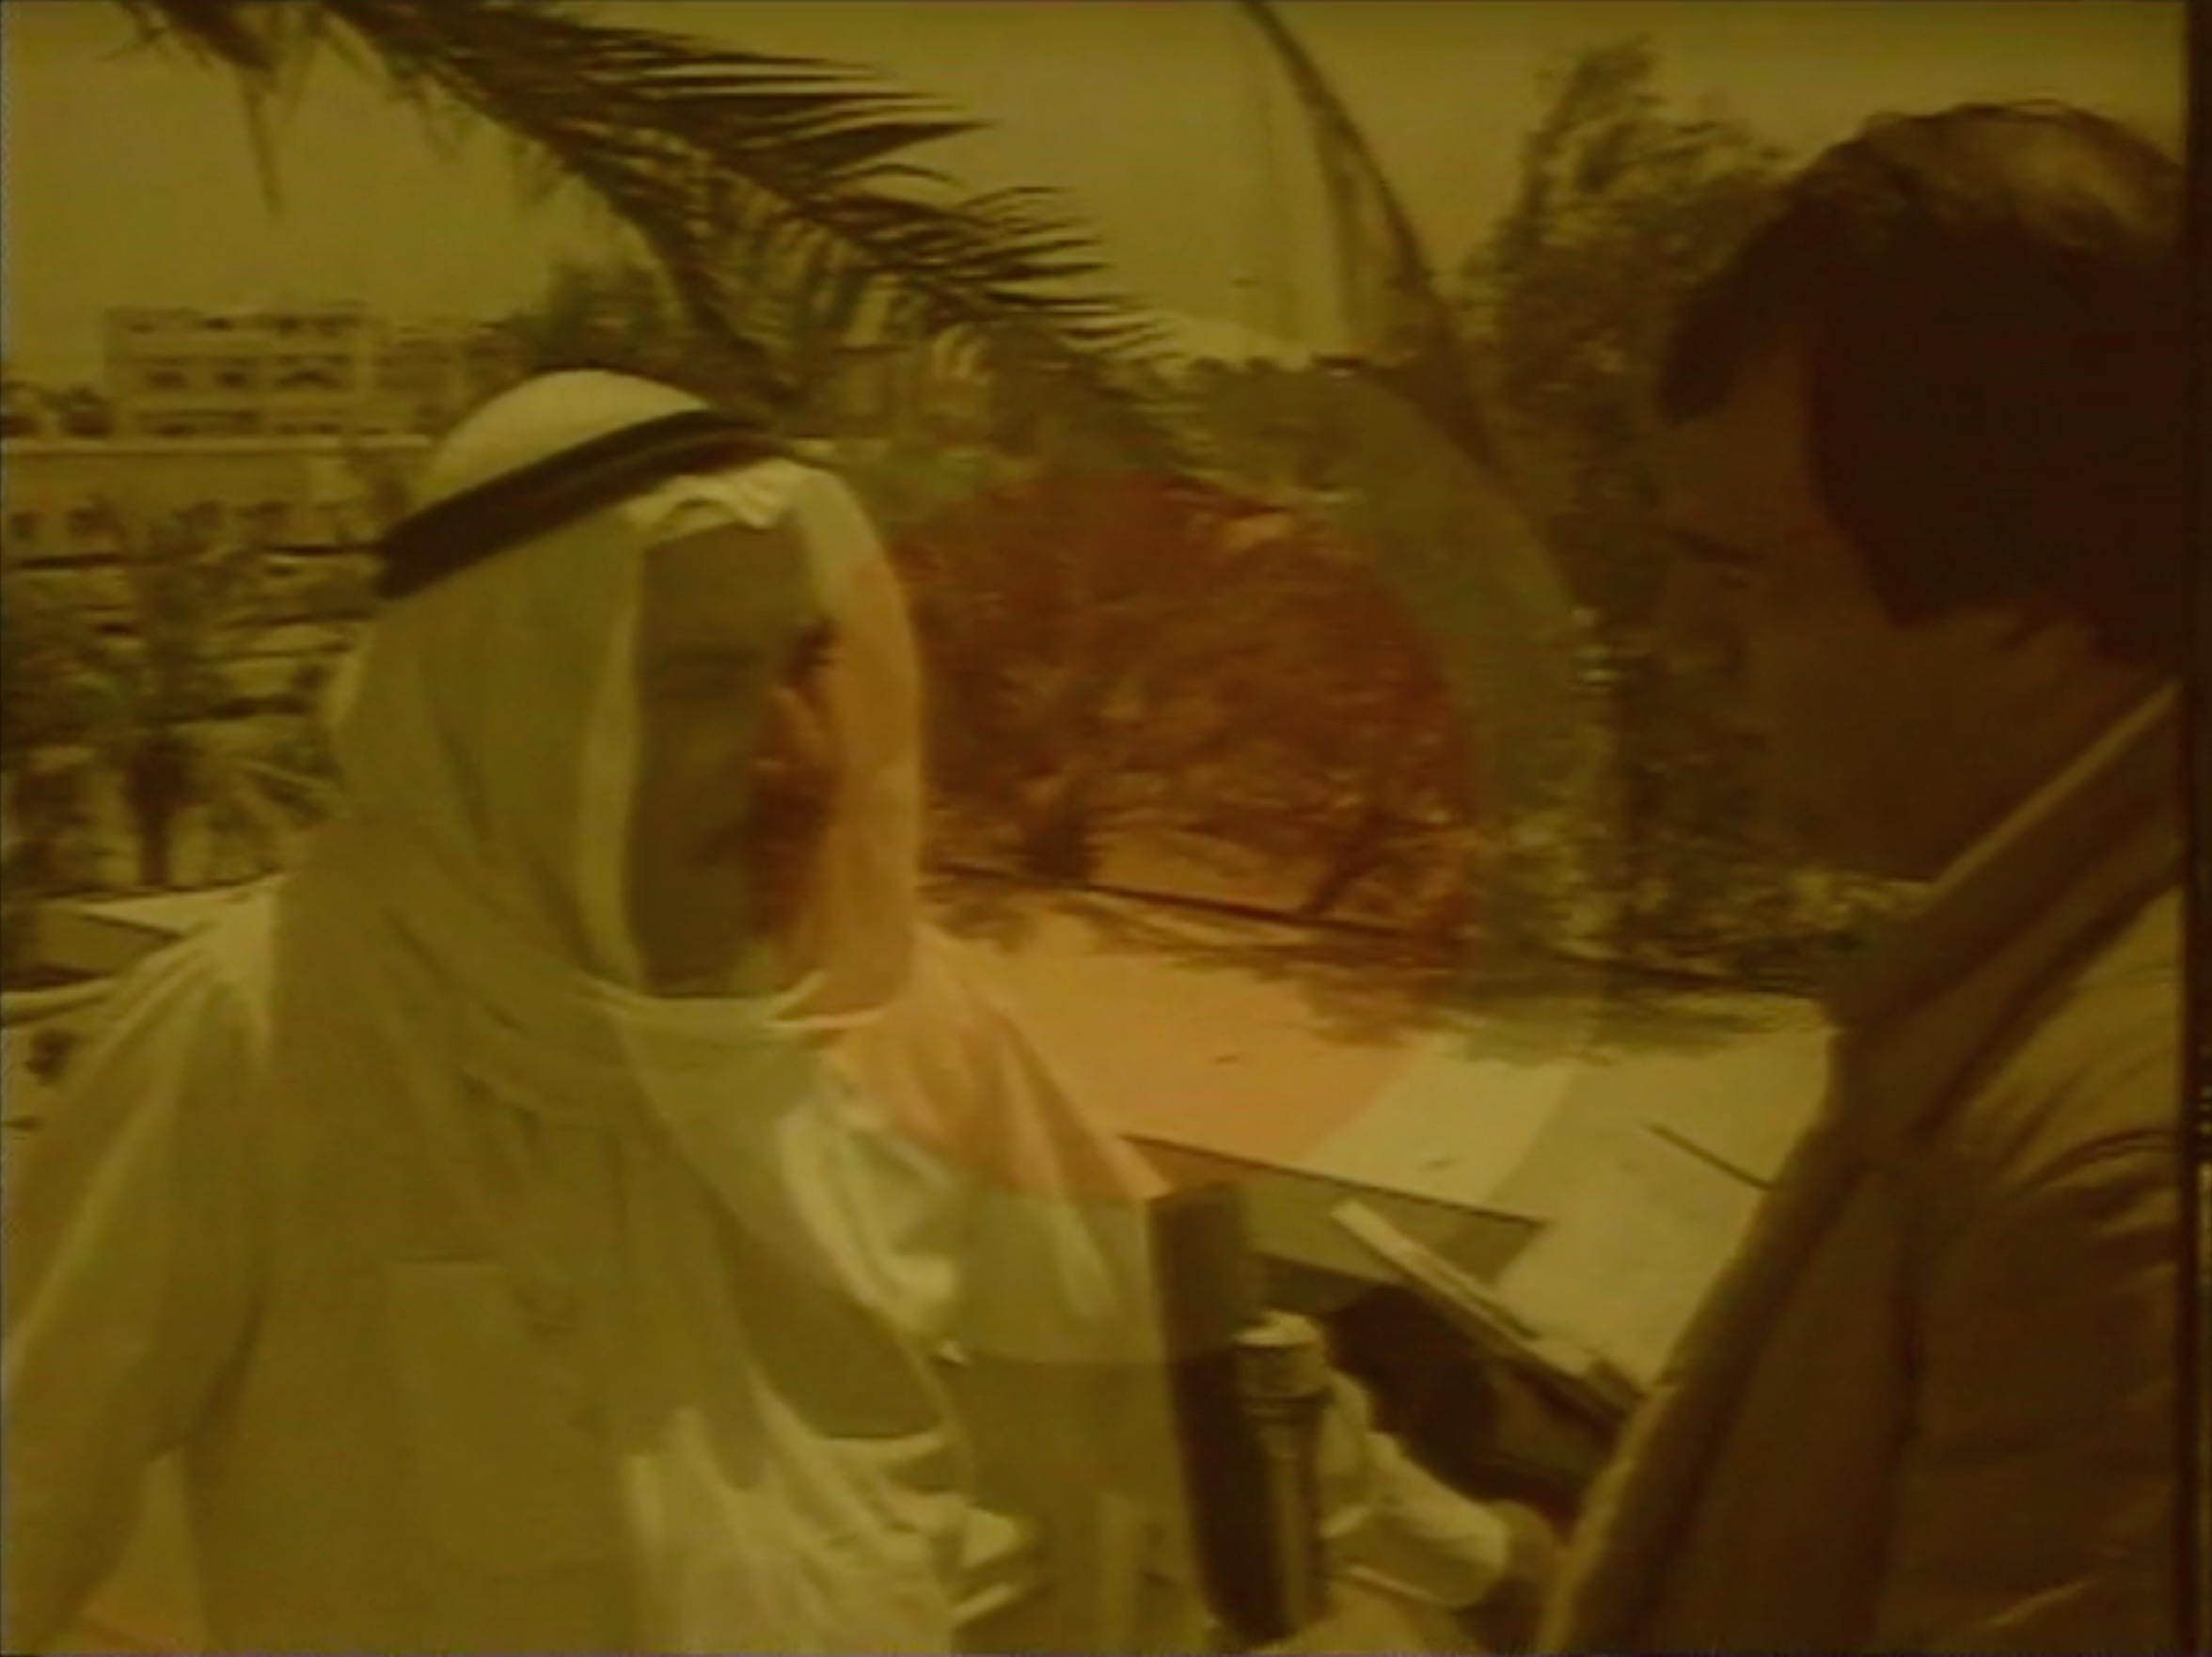 John Latham, still from The Gulf, video, 1984. From the series Targets, commissioned by Anna Ridley's Annalogue Productions for Channel 4 in as part of Dadarama. Courtesy Anna Ridley and the Artist (AND WHAT CAN WE SAY TO BE GOING ON NOW…?  0)